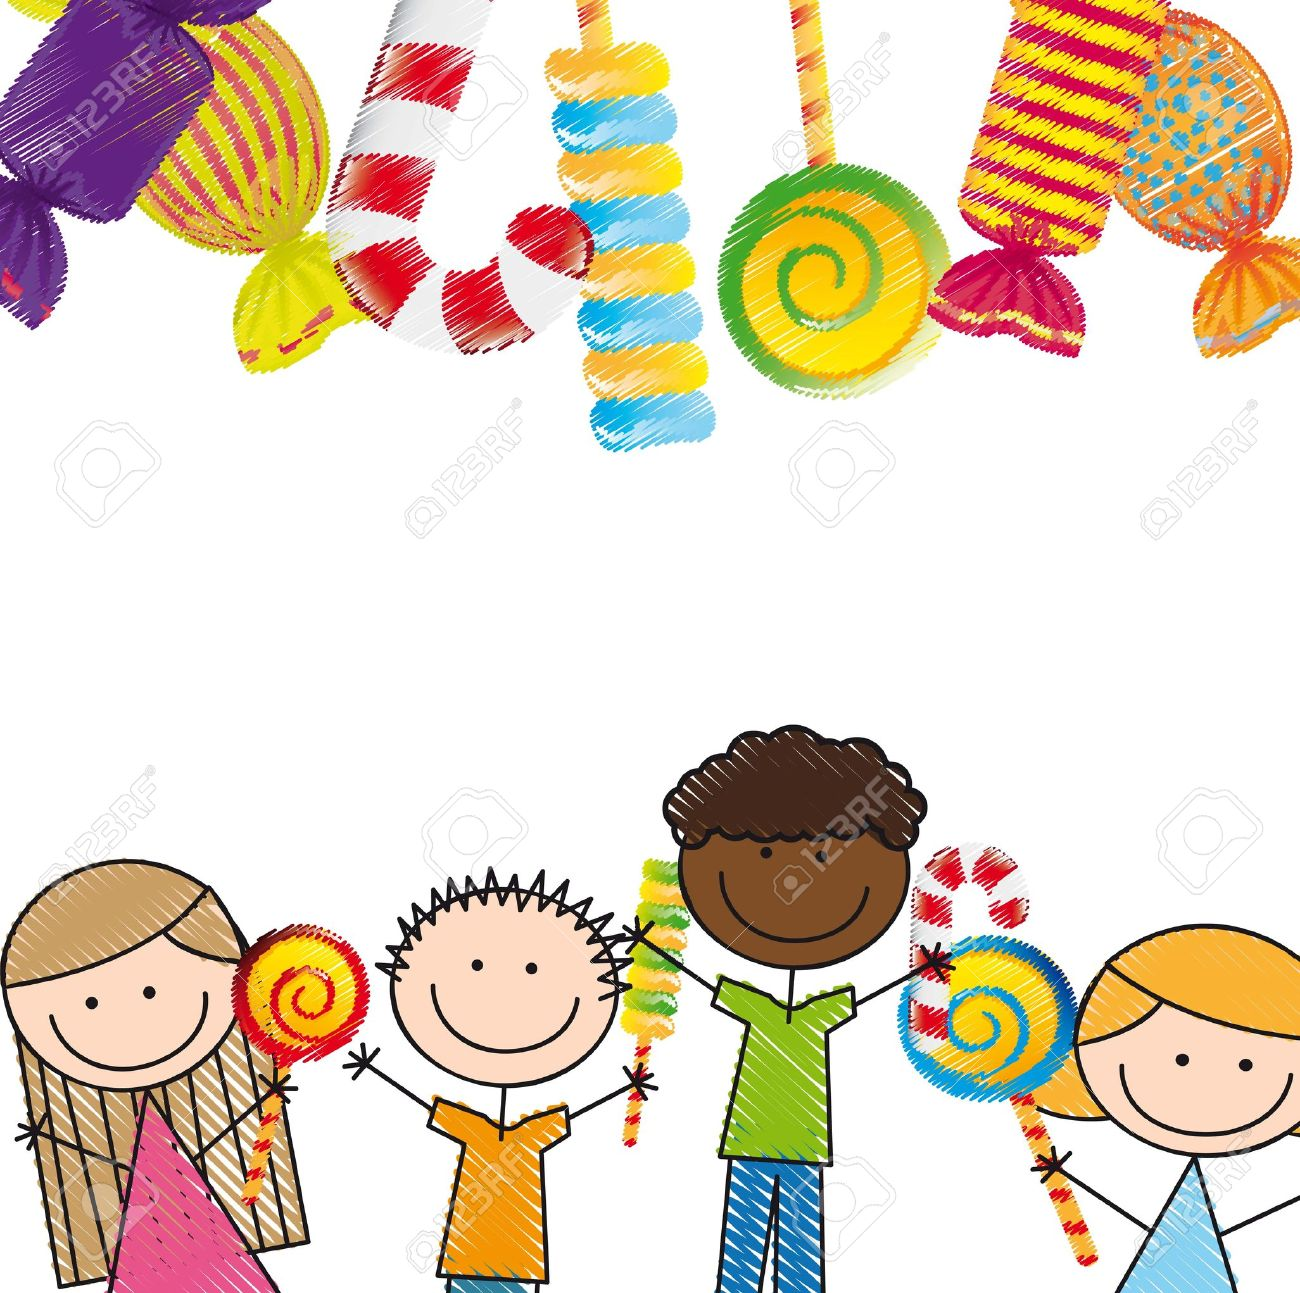 candies and children over white background. illustration Stock Vector - 14751981